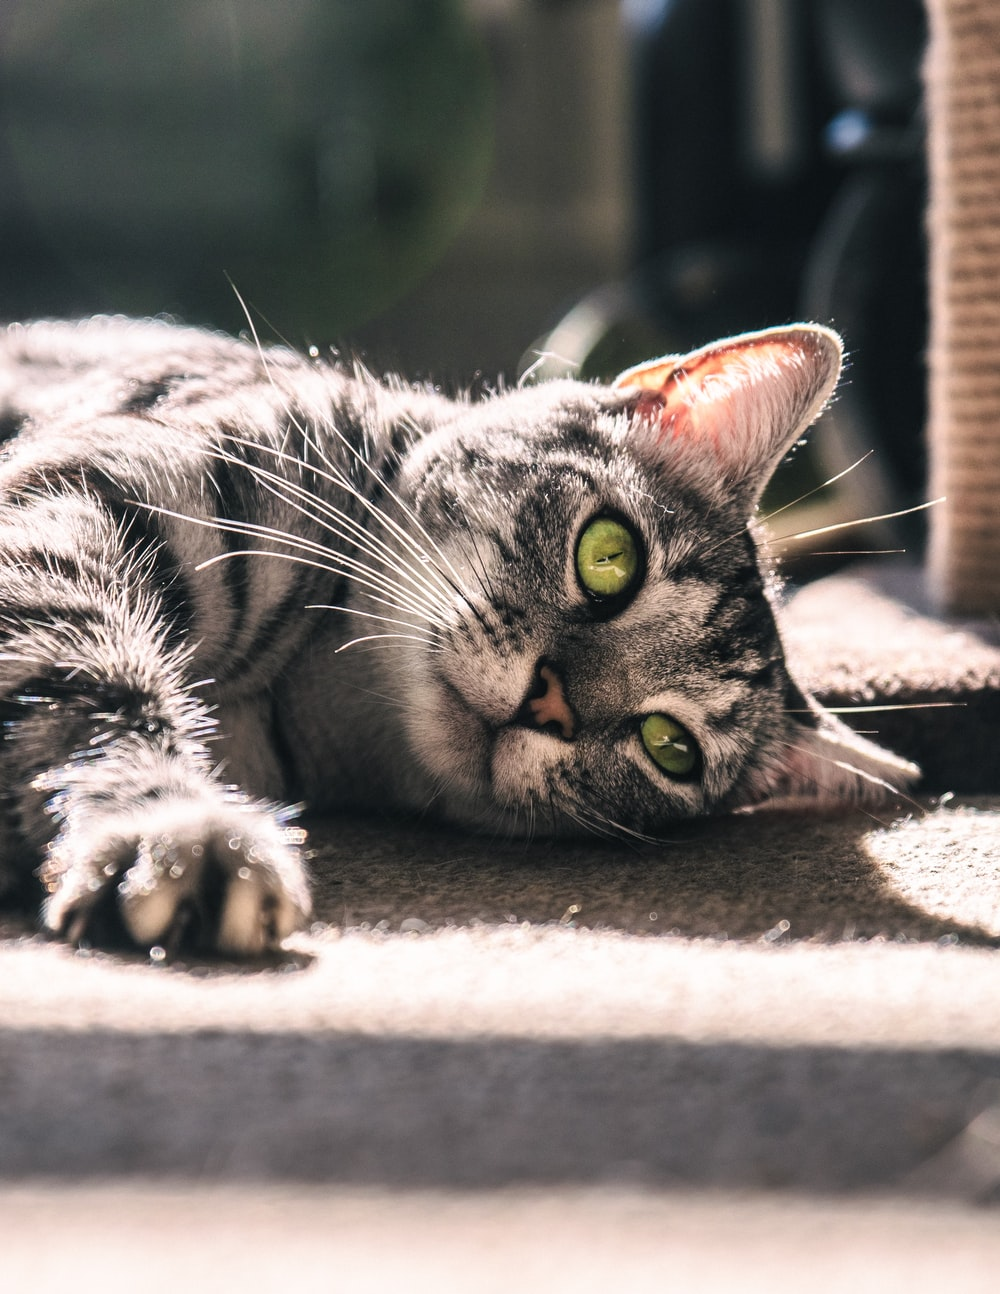 silver tabby cat lying on gray surface